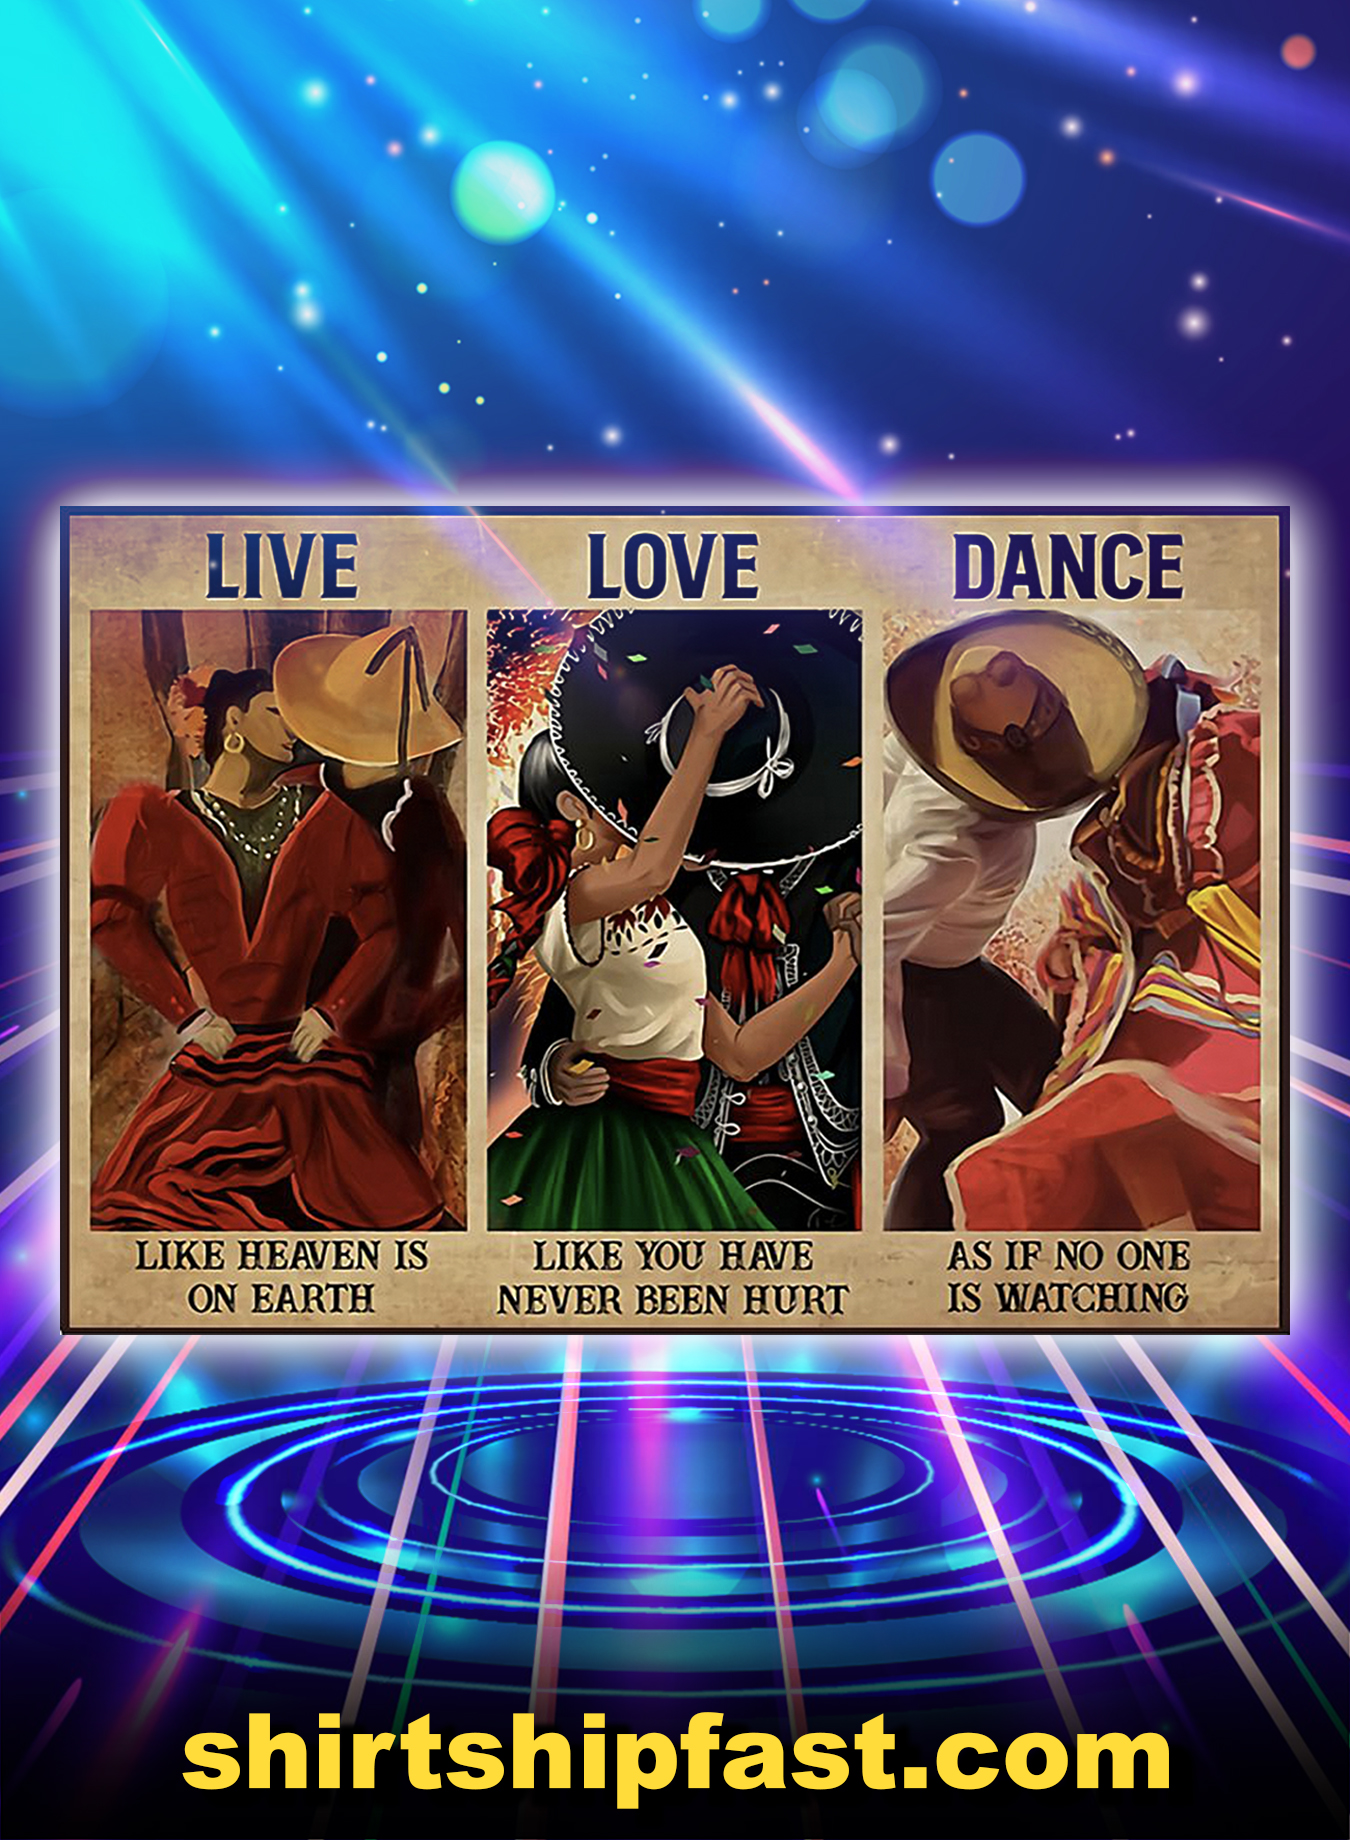 Mexican culture live love dance poster - A3